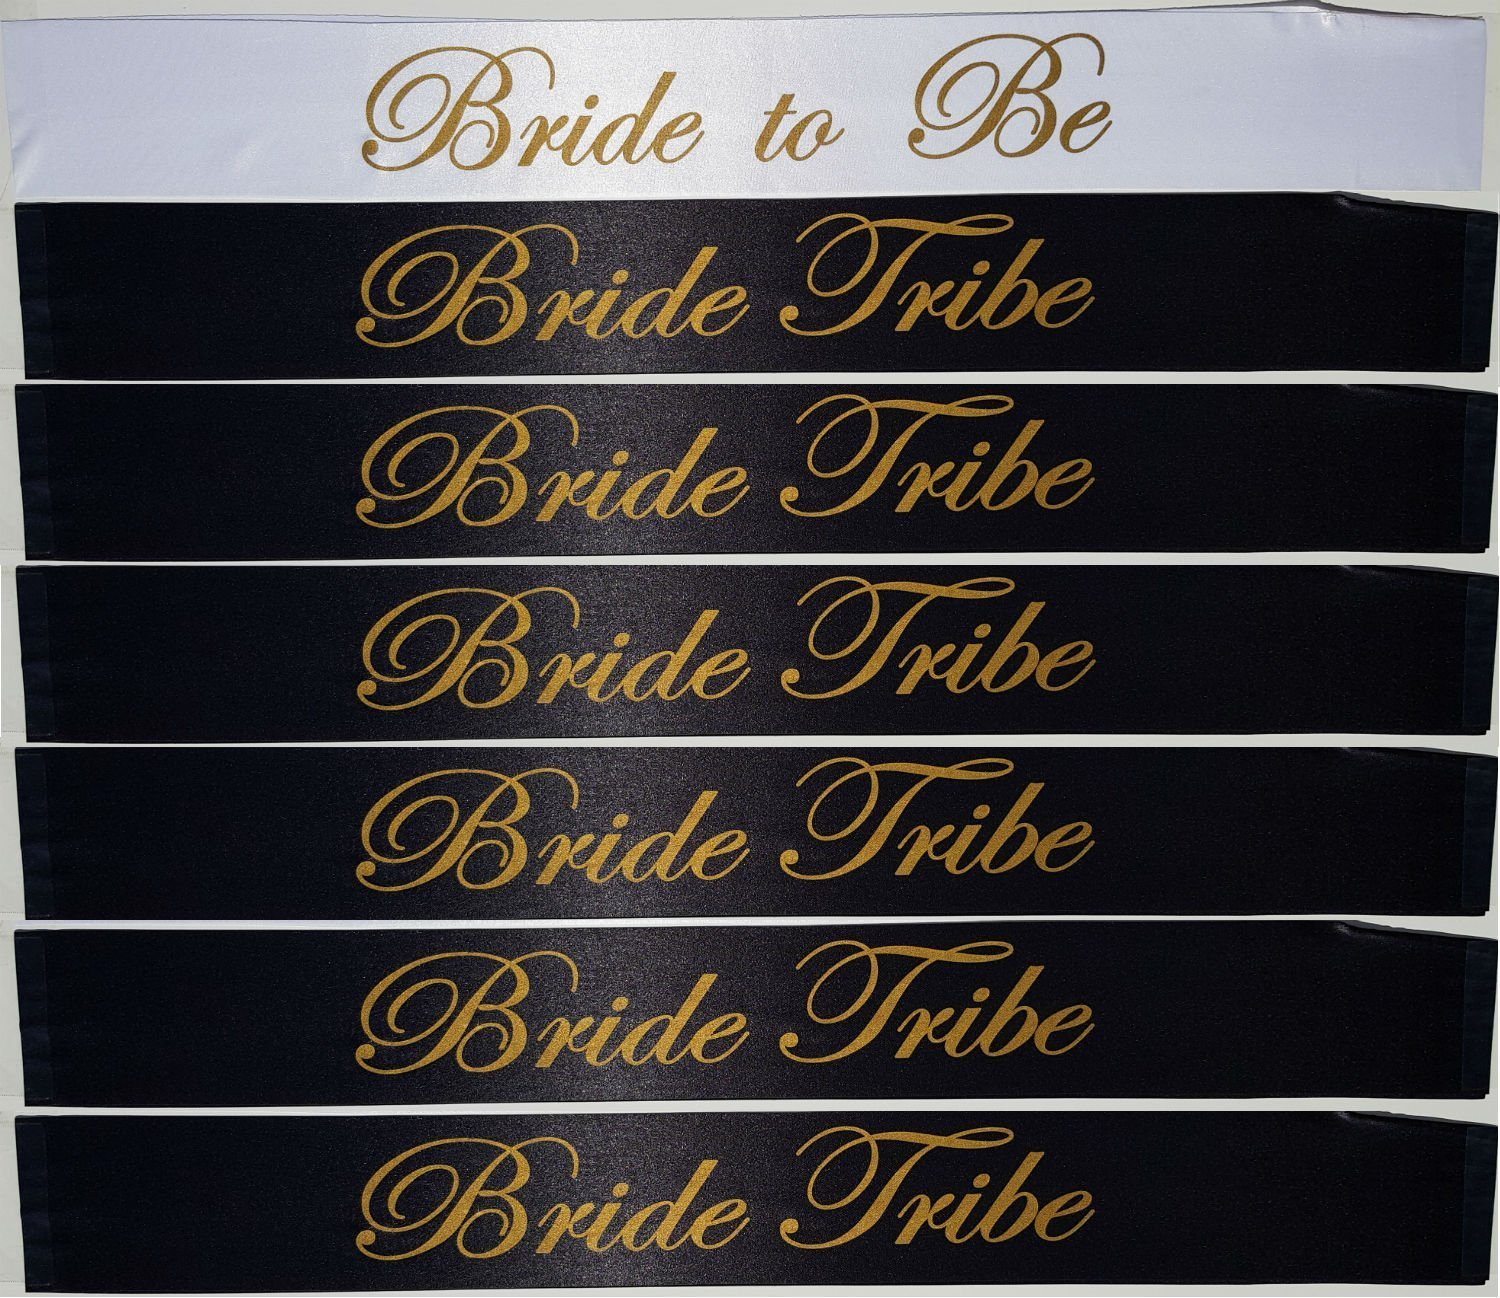 [CBC Brand] 7 Piece Bachelorette Party Sash Set: 6 x Bride Tribe in Gold Letters on Black, 1 x Bride to BE in Gold Letters on White (Party Favors for Hen Party, Bridal Shower & Wedding Decorations)